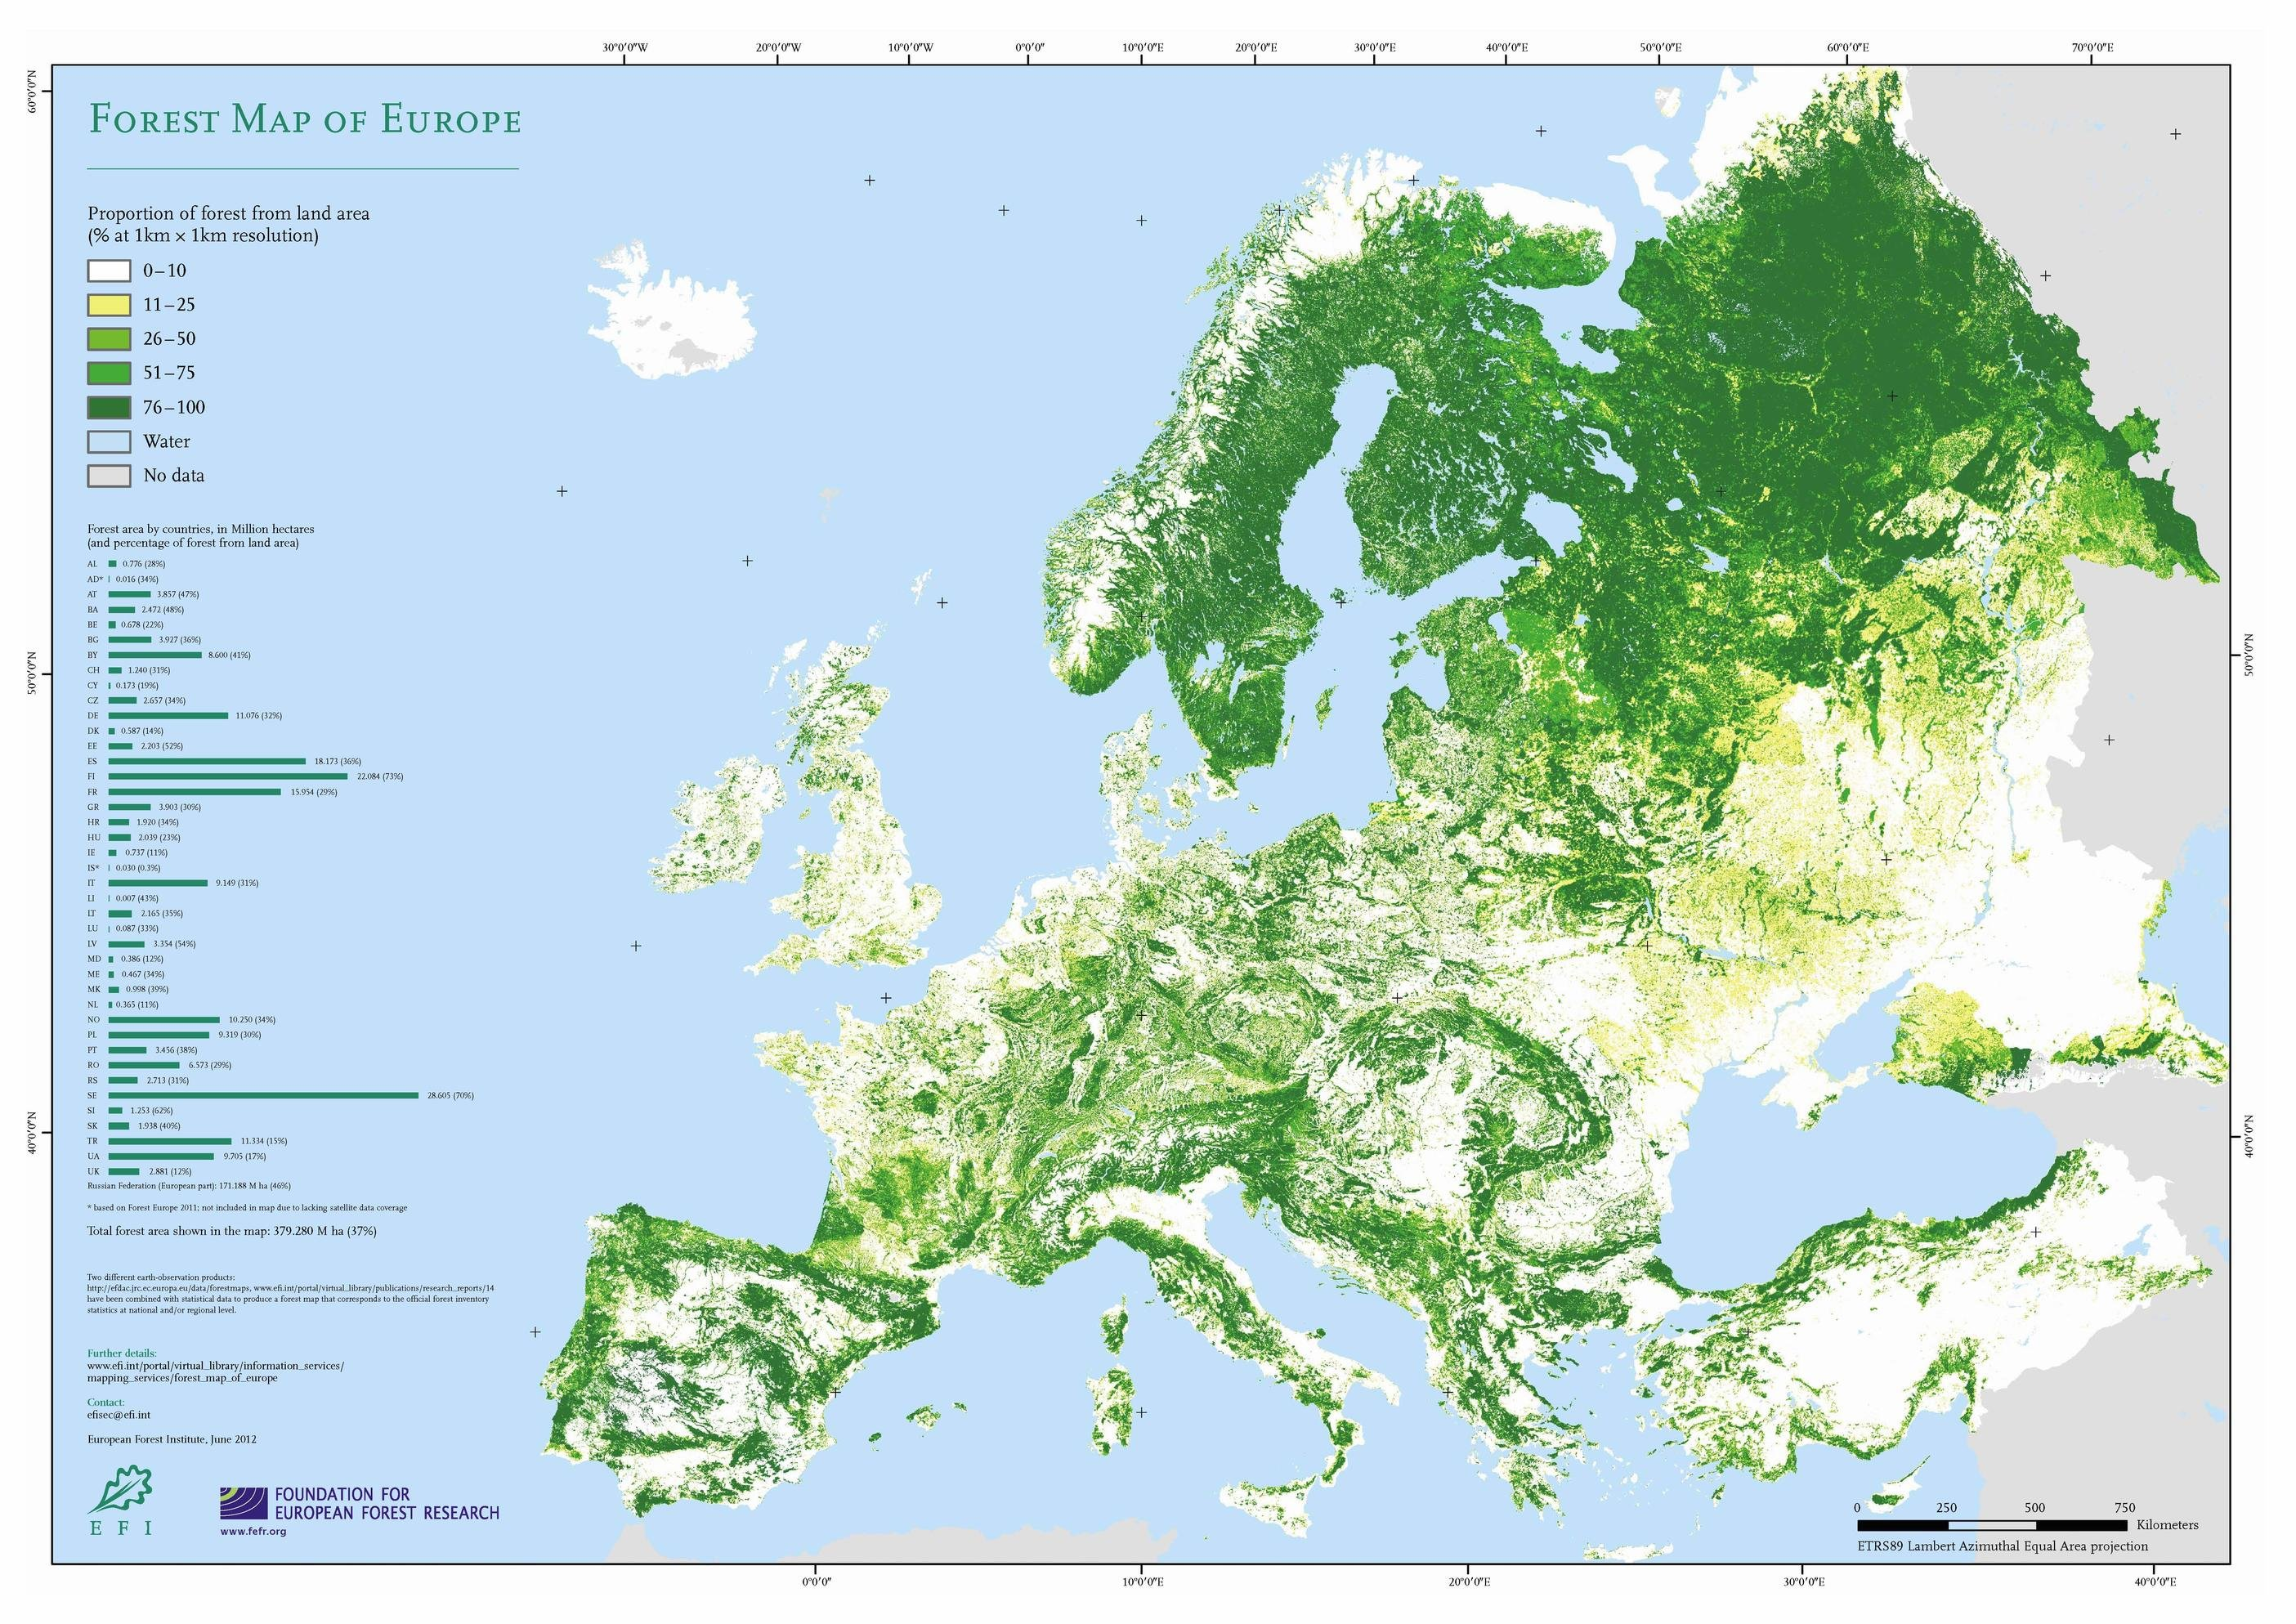 Deforestation Map Of Europe [Animated] - Tony Mapped It on ecological succession map, climate change, hydroelectric dams map, land pollution, transboundary pollution map, environmental issue, world map, ozone depletion, exploitation of natural resources, global warming map, land degradation, groundwater depletion map, pesticide use map, greenhouse gas, species extinction map, glacier melt map, global warming, ecological footprint map, environmental degradation, water depletion map, tree plantation map, intensive farming map, danish language map, illegal logging, mass extinction map, forest reserves map, land use map, indoor air pollution map, environmental problems map, genetically modified crops map,